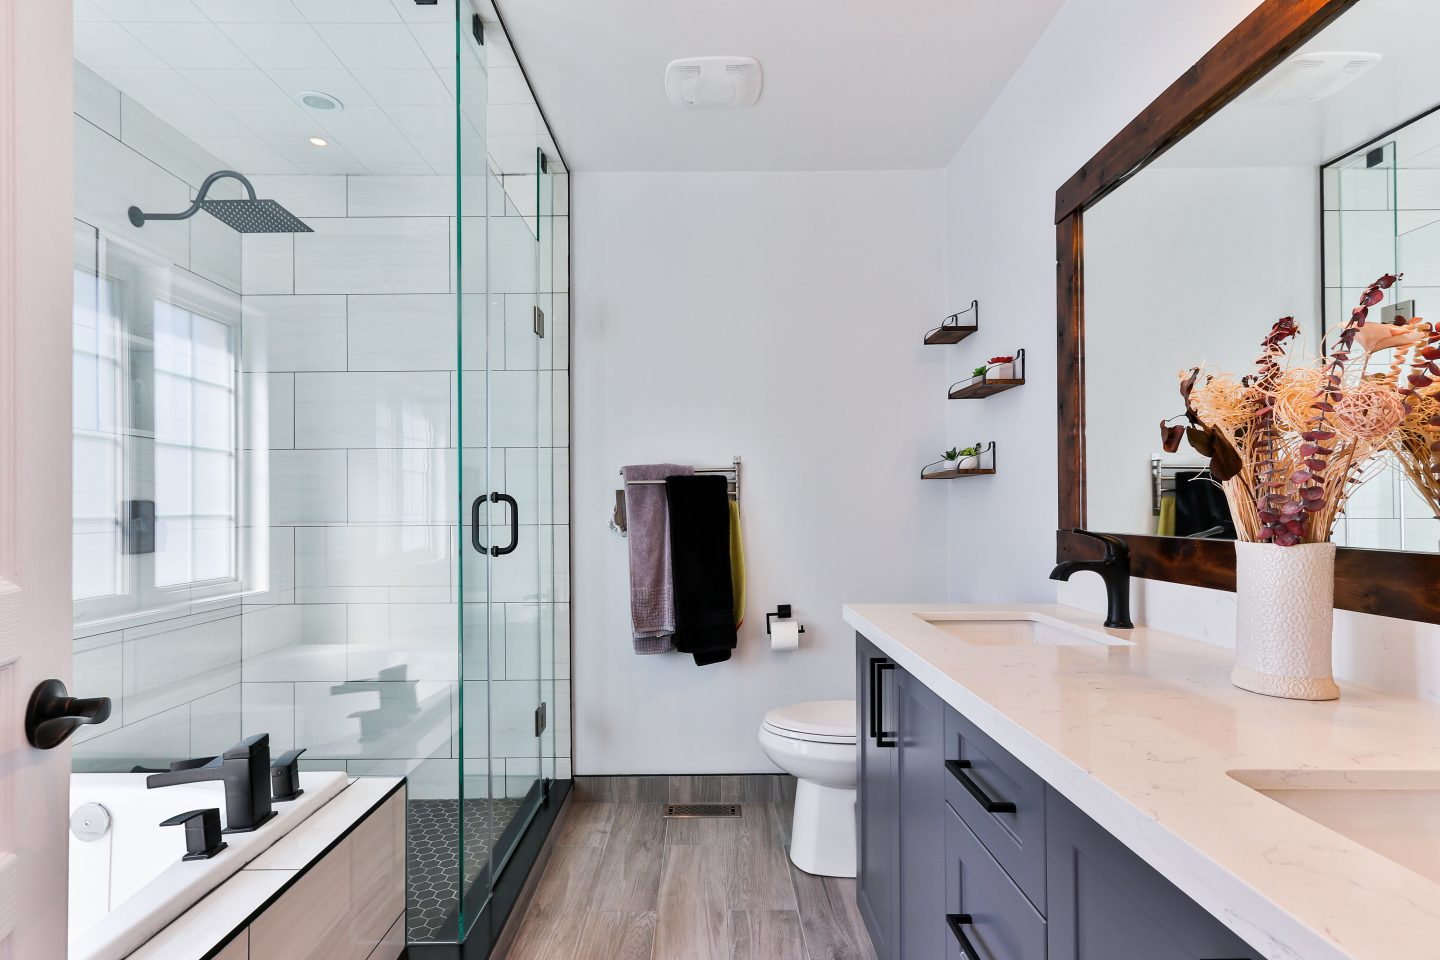 3 Additions That Can Truly Complete Your Bathroom Experience